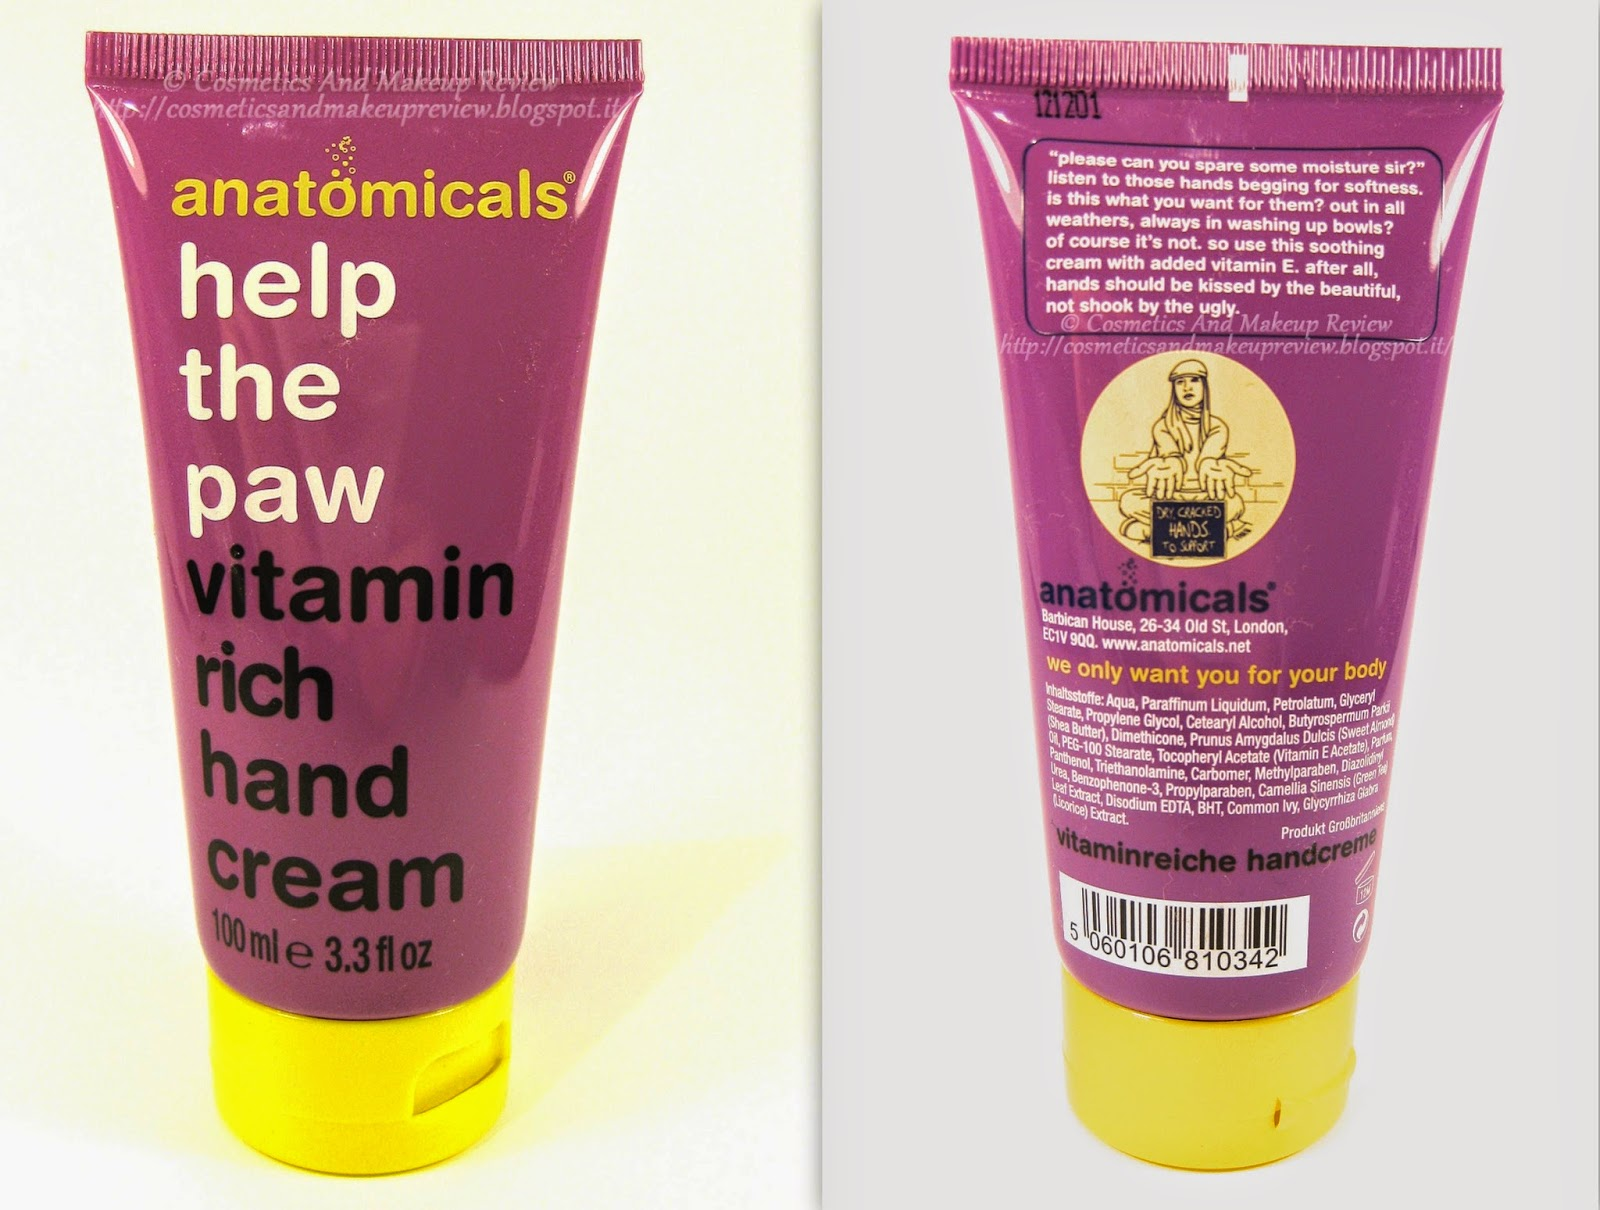 Anatomicals - Help the paw - Vitamin rich hand cream (crema mani) - packaging